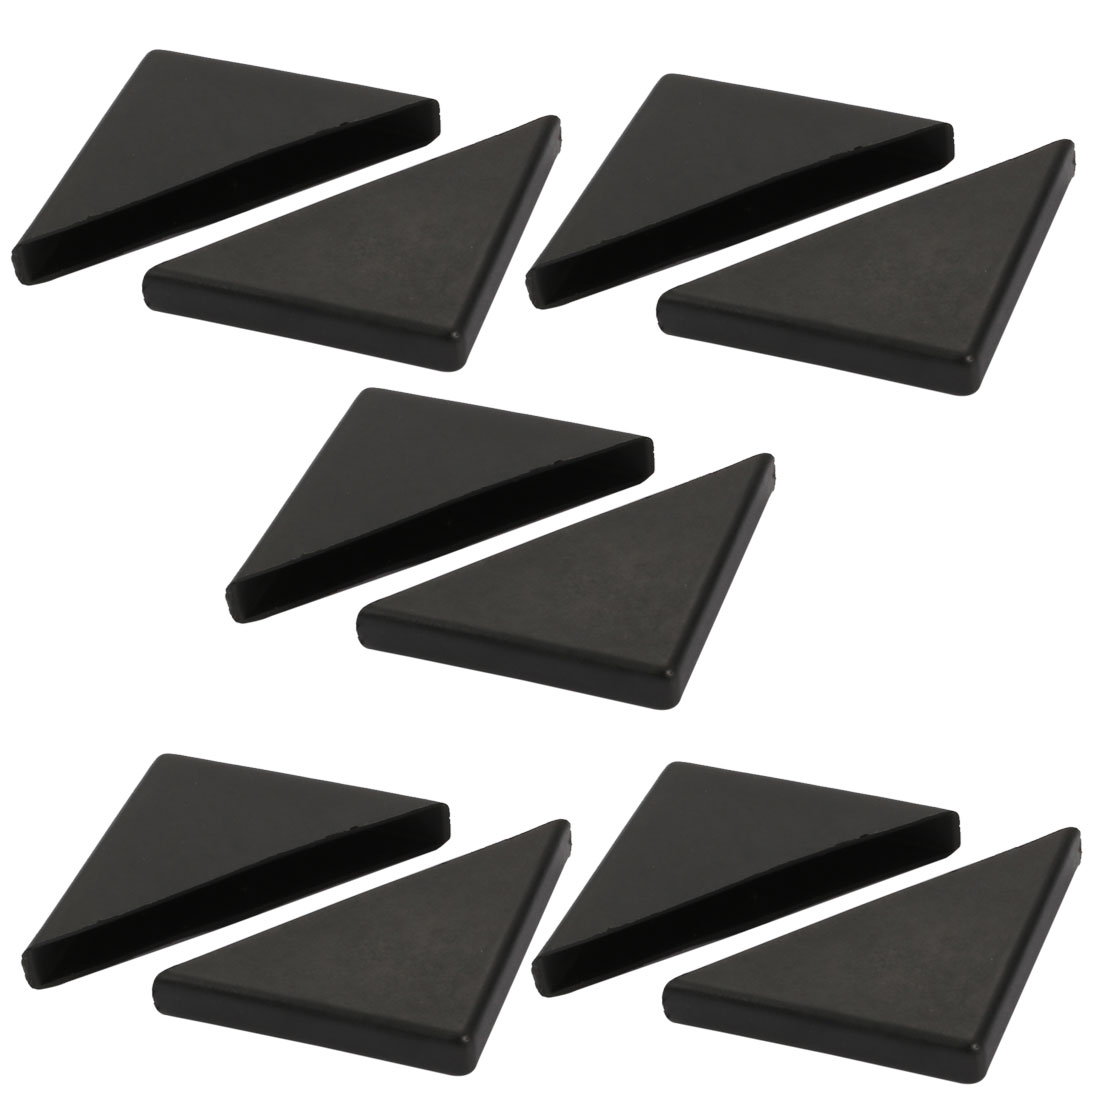 10pcs 55mmx55mm Plastic Table Desk Corner Guard Protector Fit for 8mm Thickness